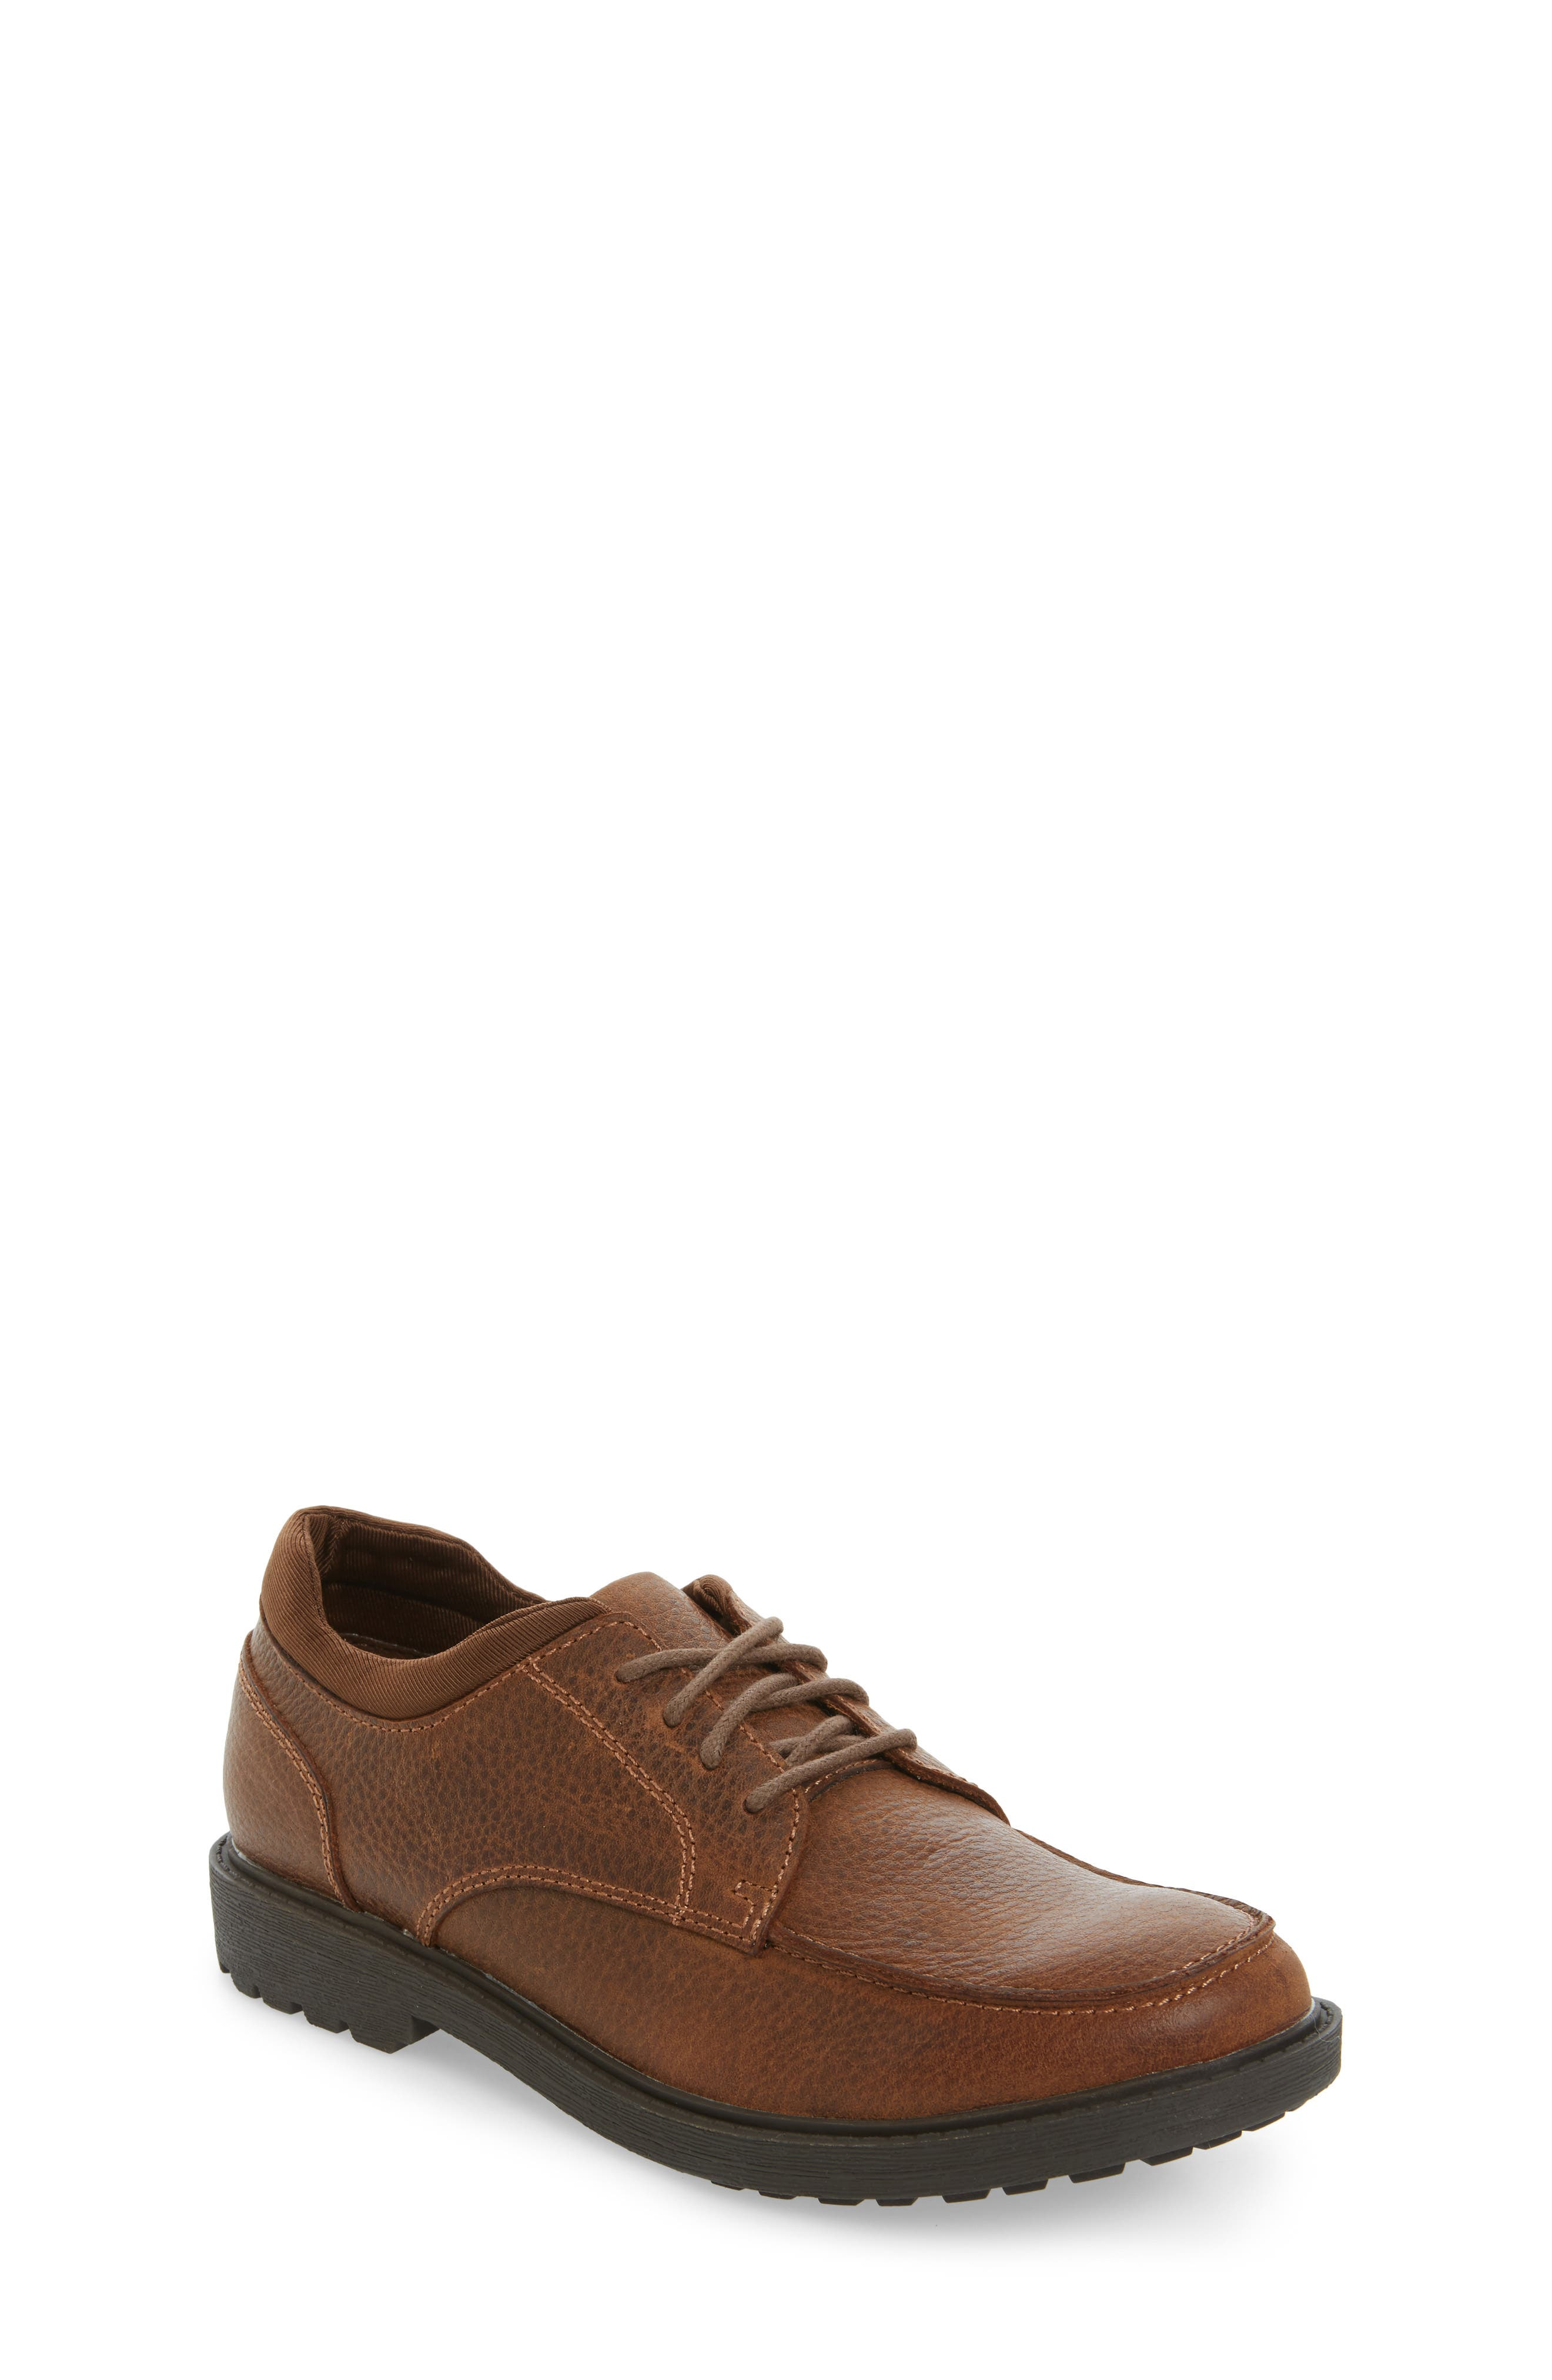 Main Image - Kenneth Cole New York Strada Neocap Oxford (Toddler, Little Kid & Big Kid)